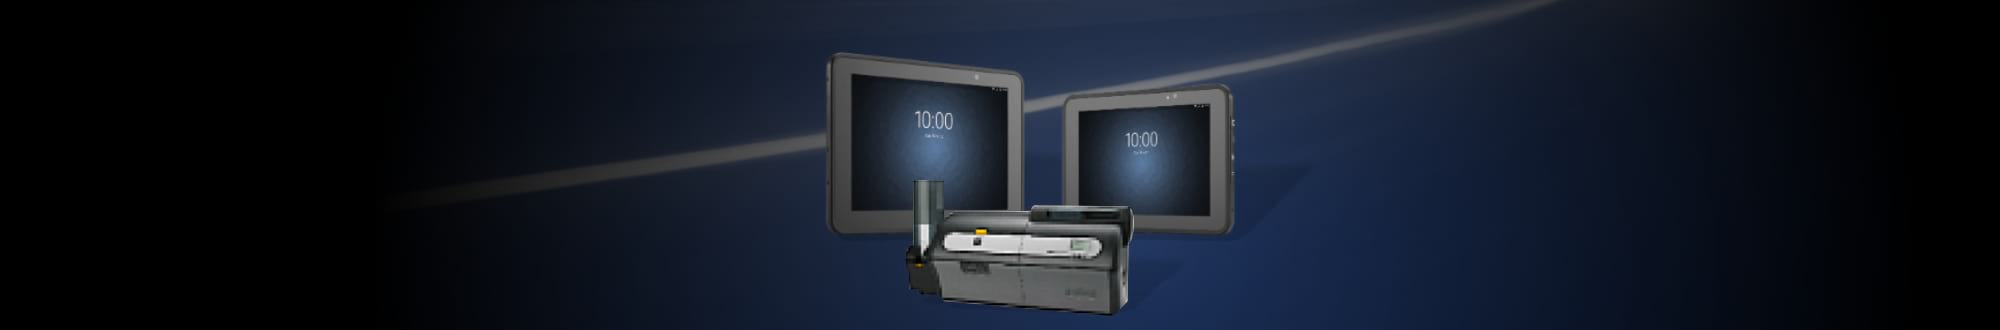 tablet and printer